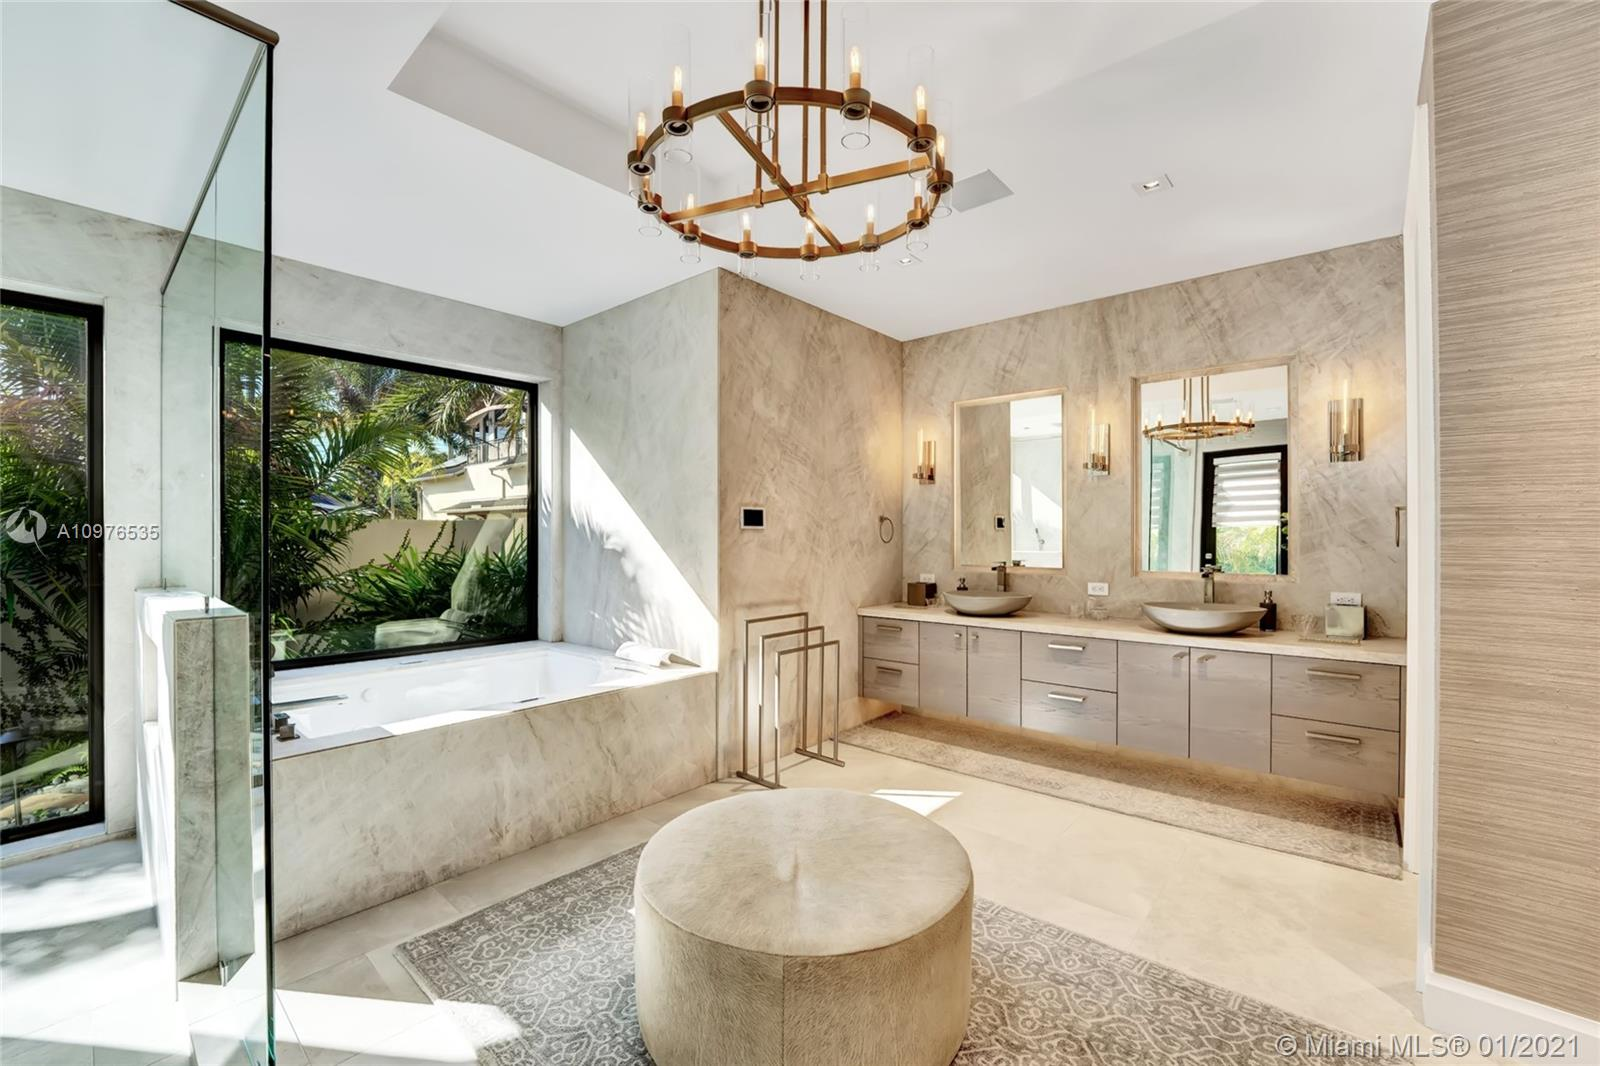 The master bath is adorned with sandstone sinks with high end materials throughout, including quartz countertops.